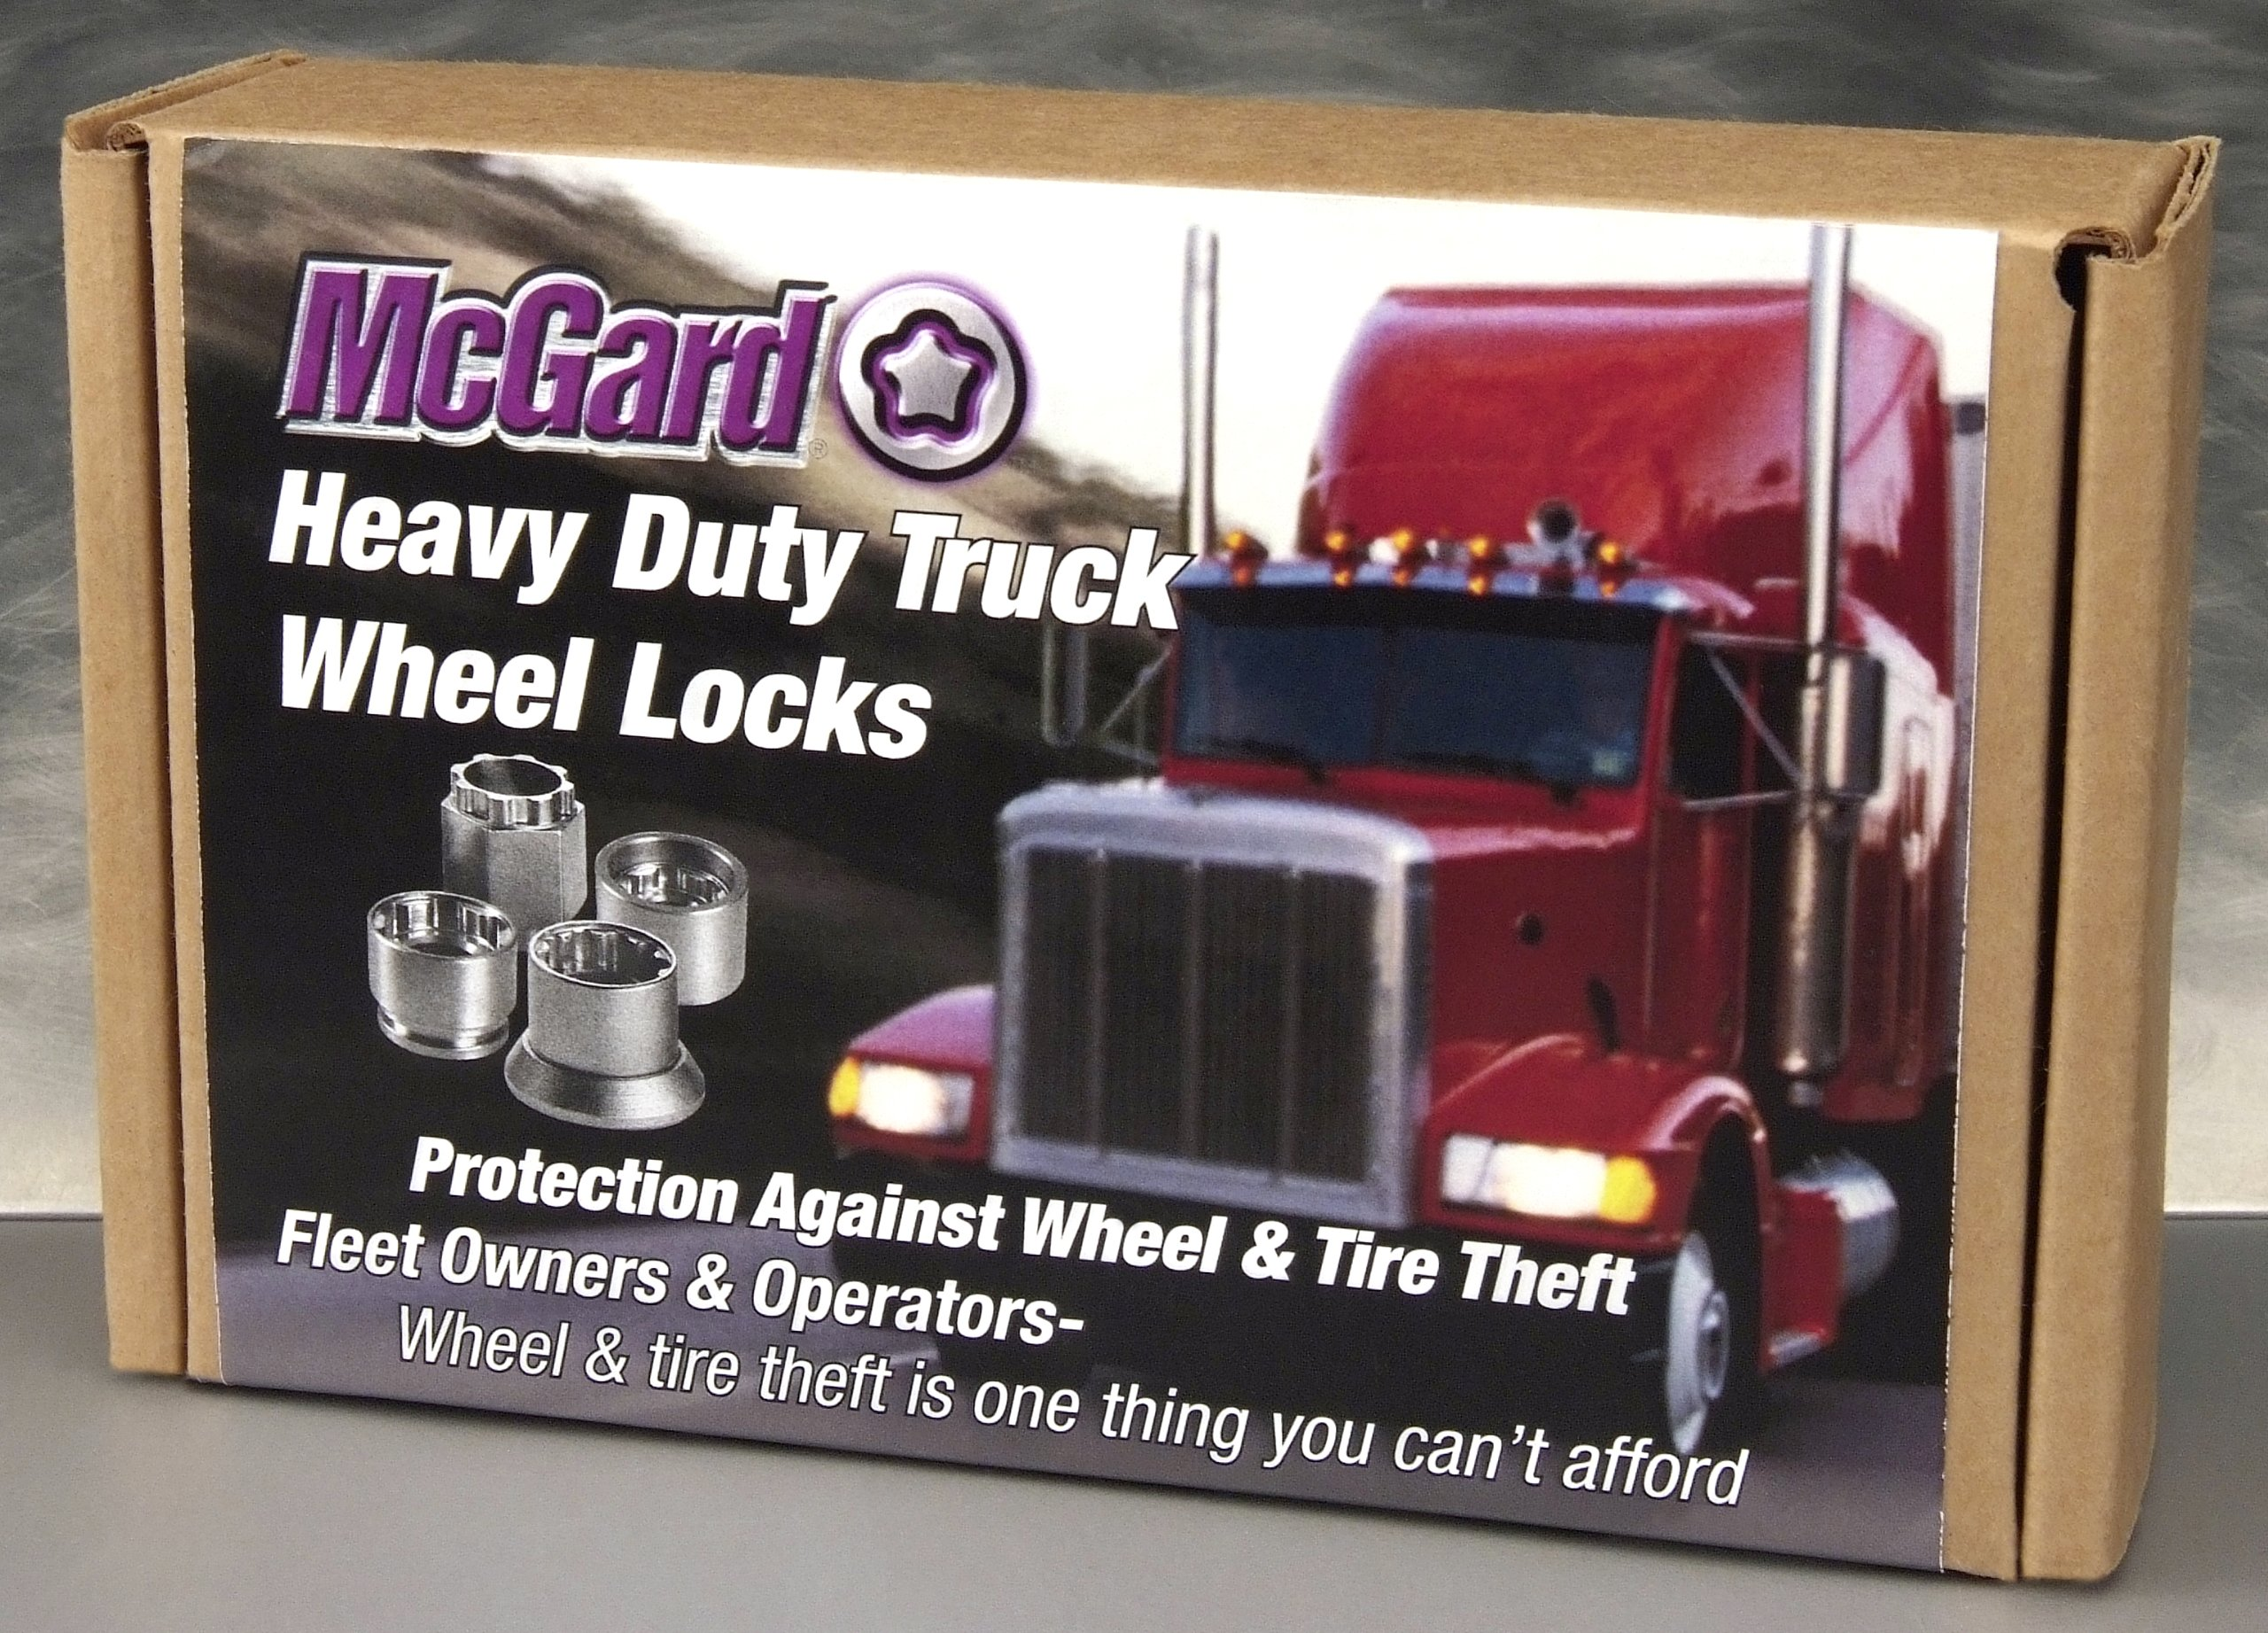 McGard 52003 Heavy Duty Truck and Trailer Wheel Lock Set (M22 x 1.5 Thread Size) - Set of 10 by McGard (Image #2)